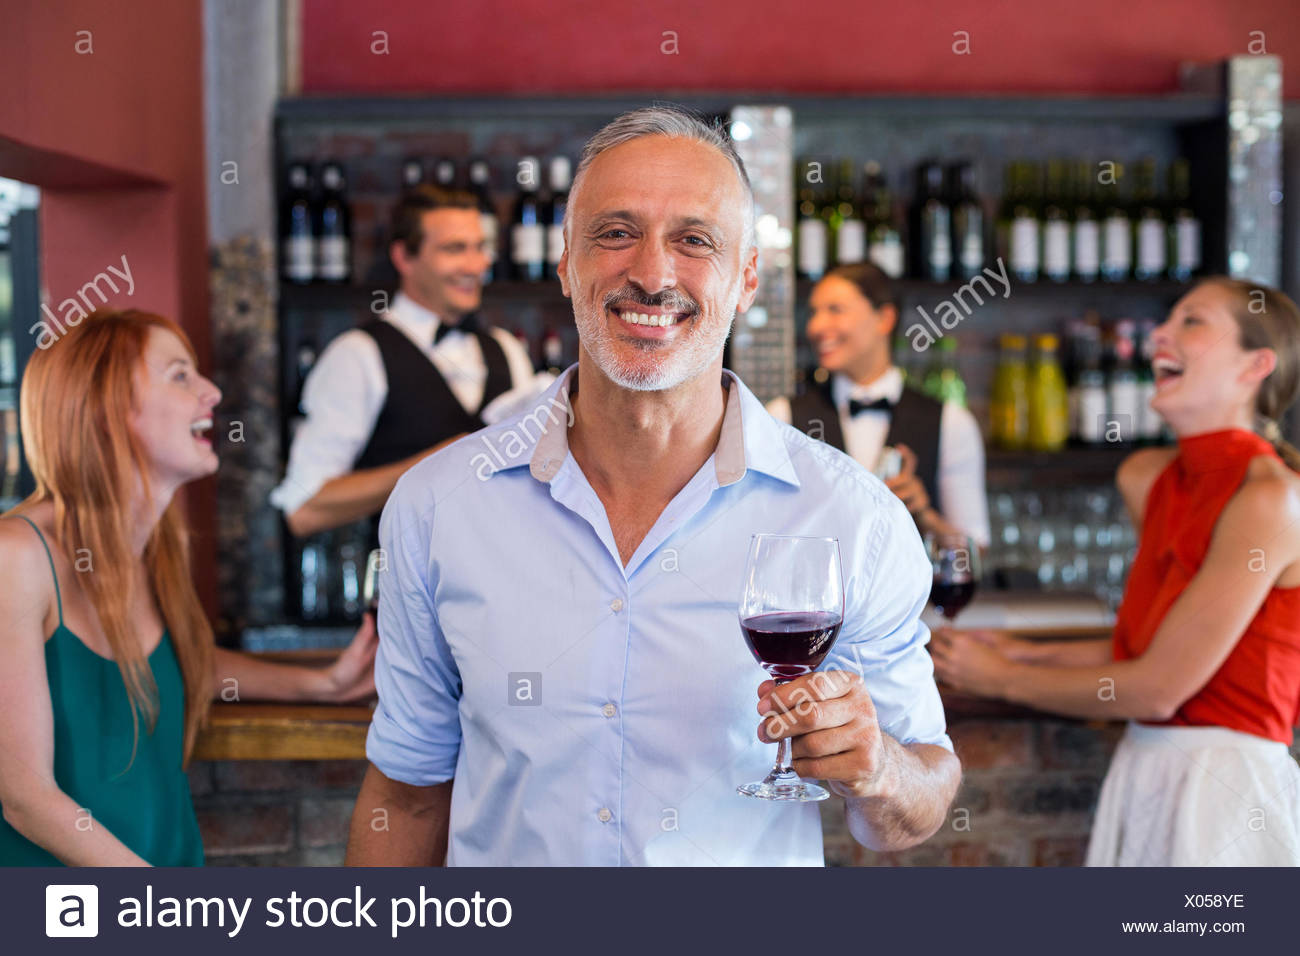 Portrait of man holding a wine glass in front of bar counter - Stock Image